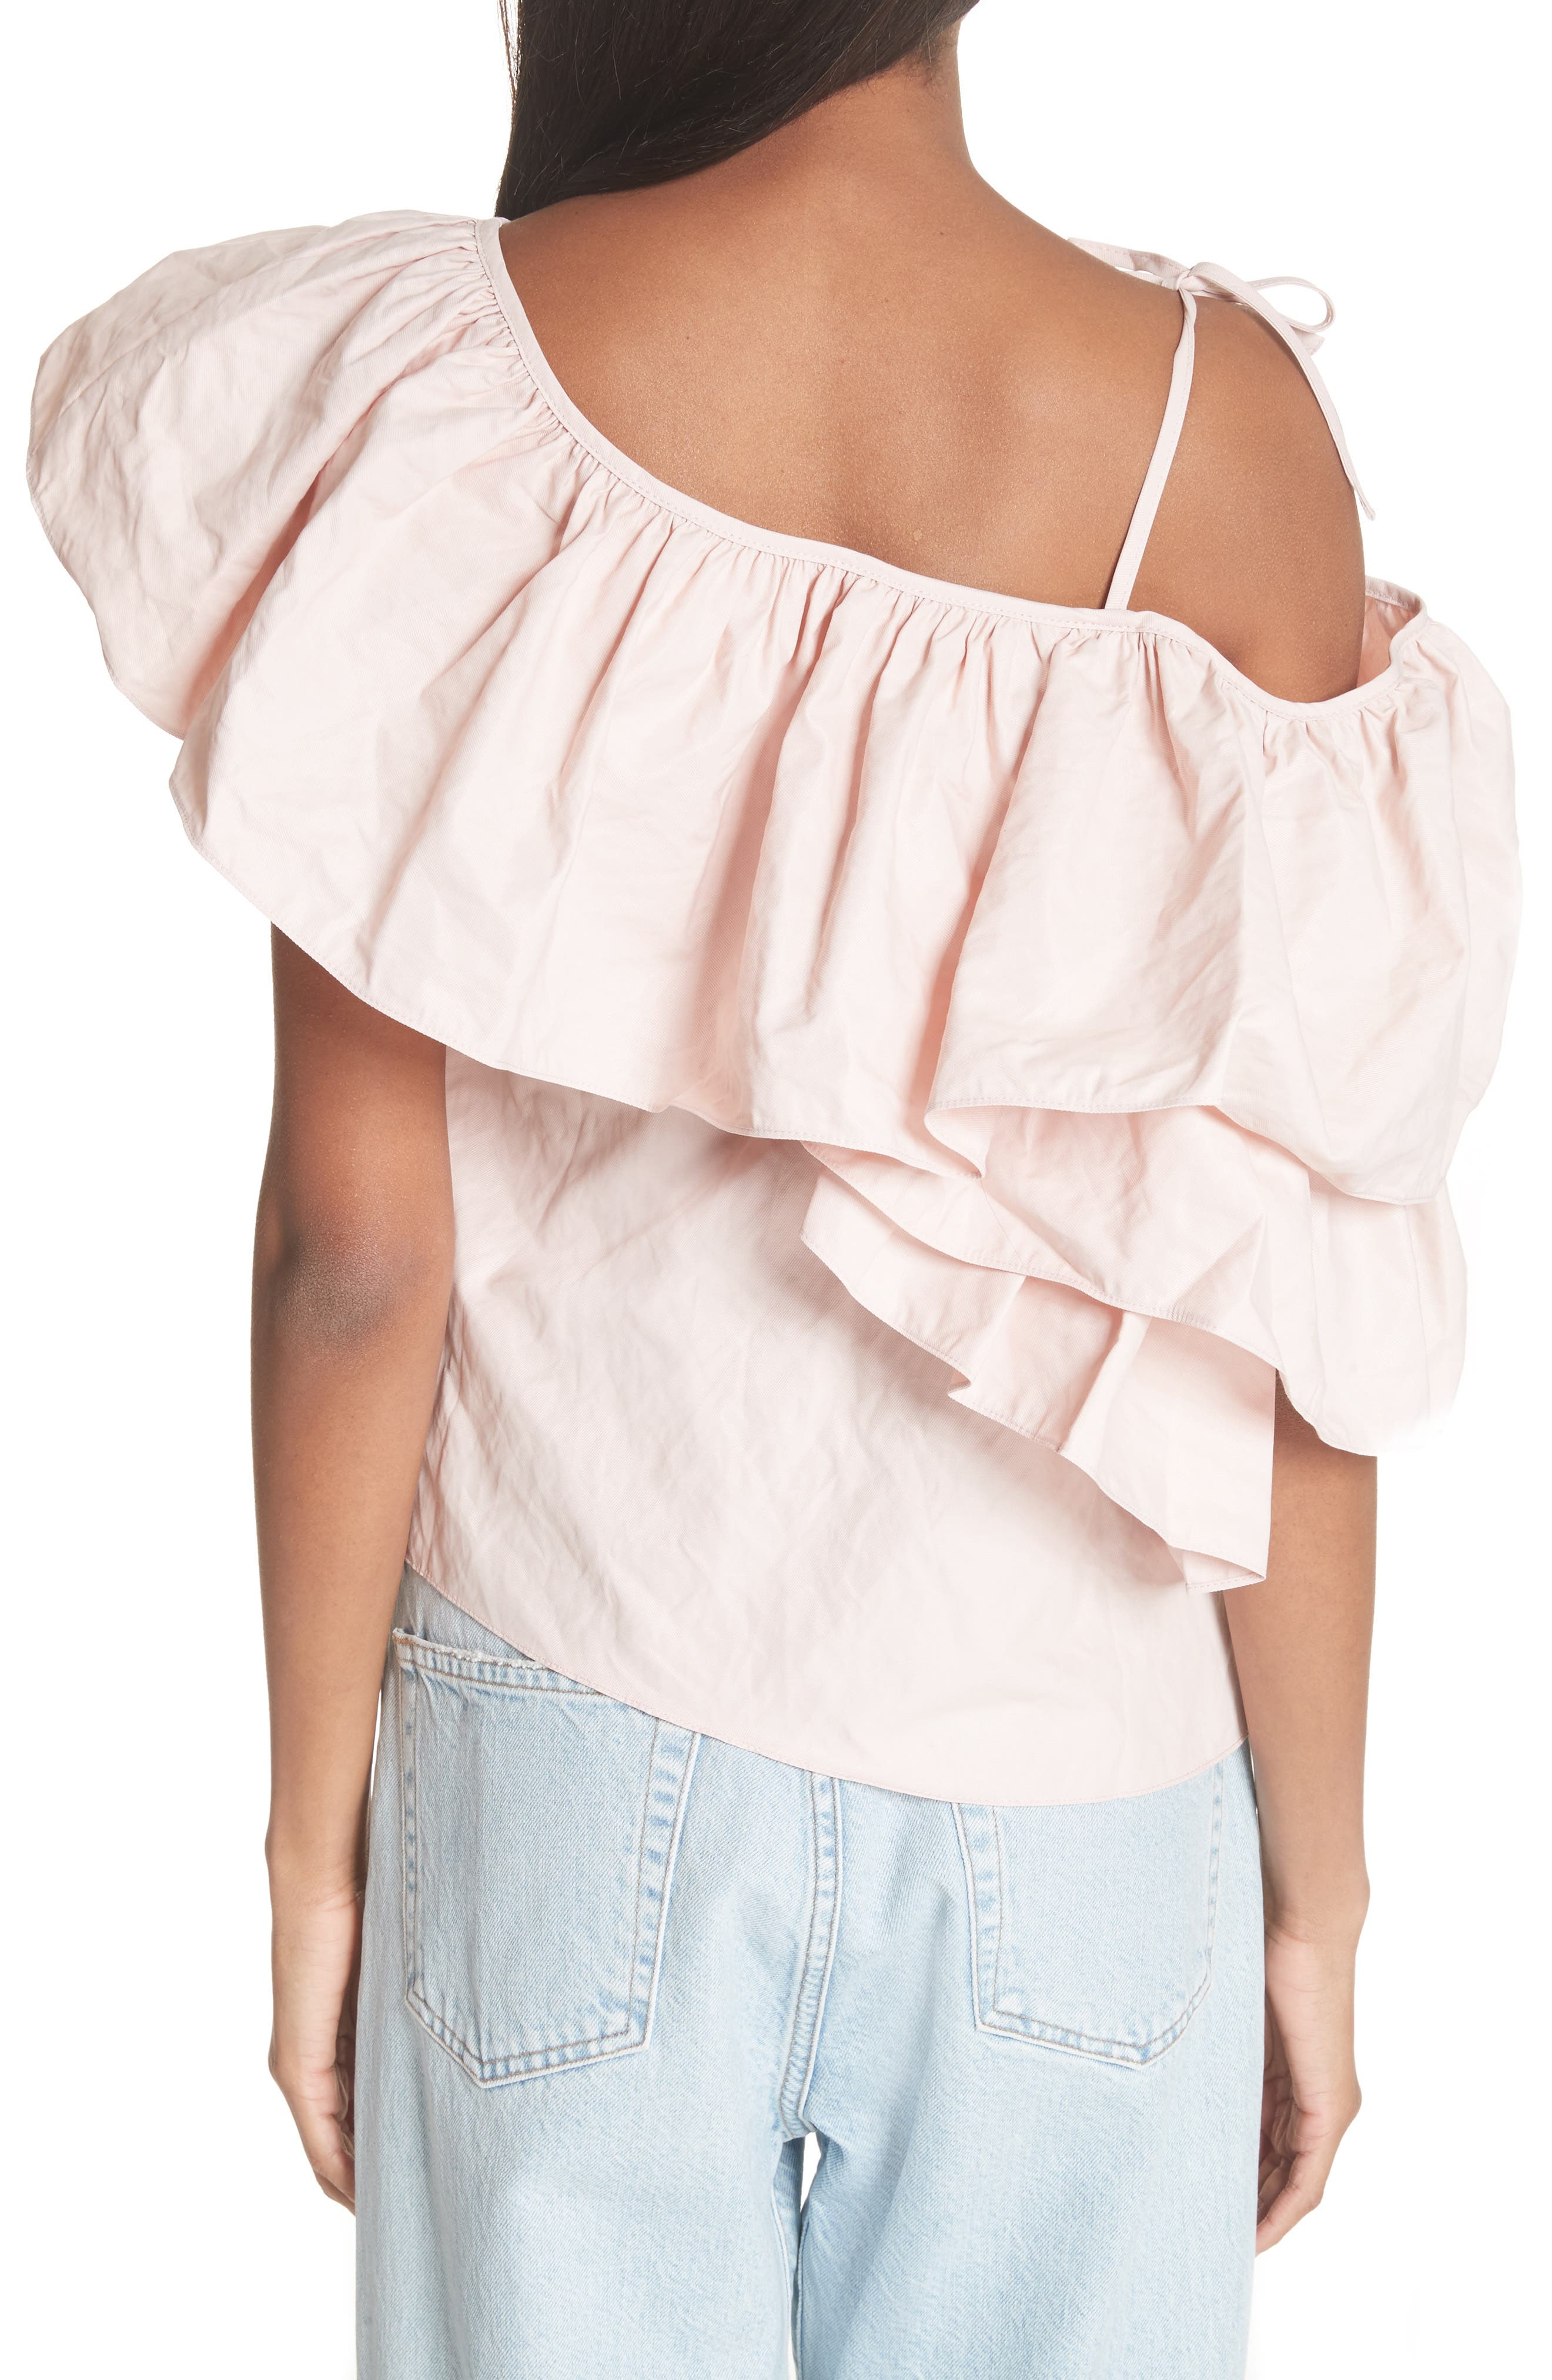 Marques'Almeida One Shoulder Ruffle Top,                             Alternate thumbnail 2, color,                             650